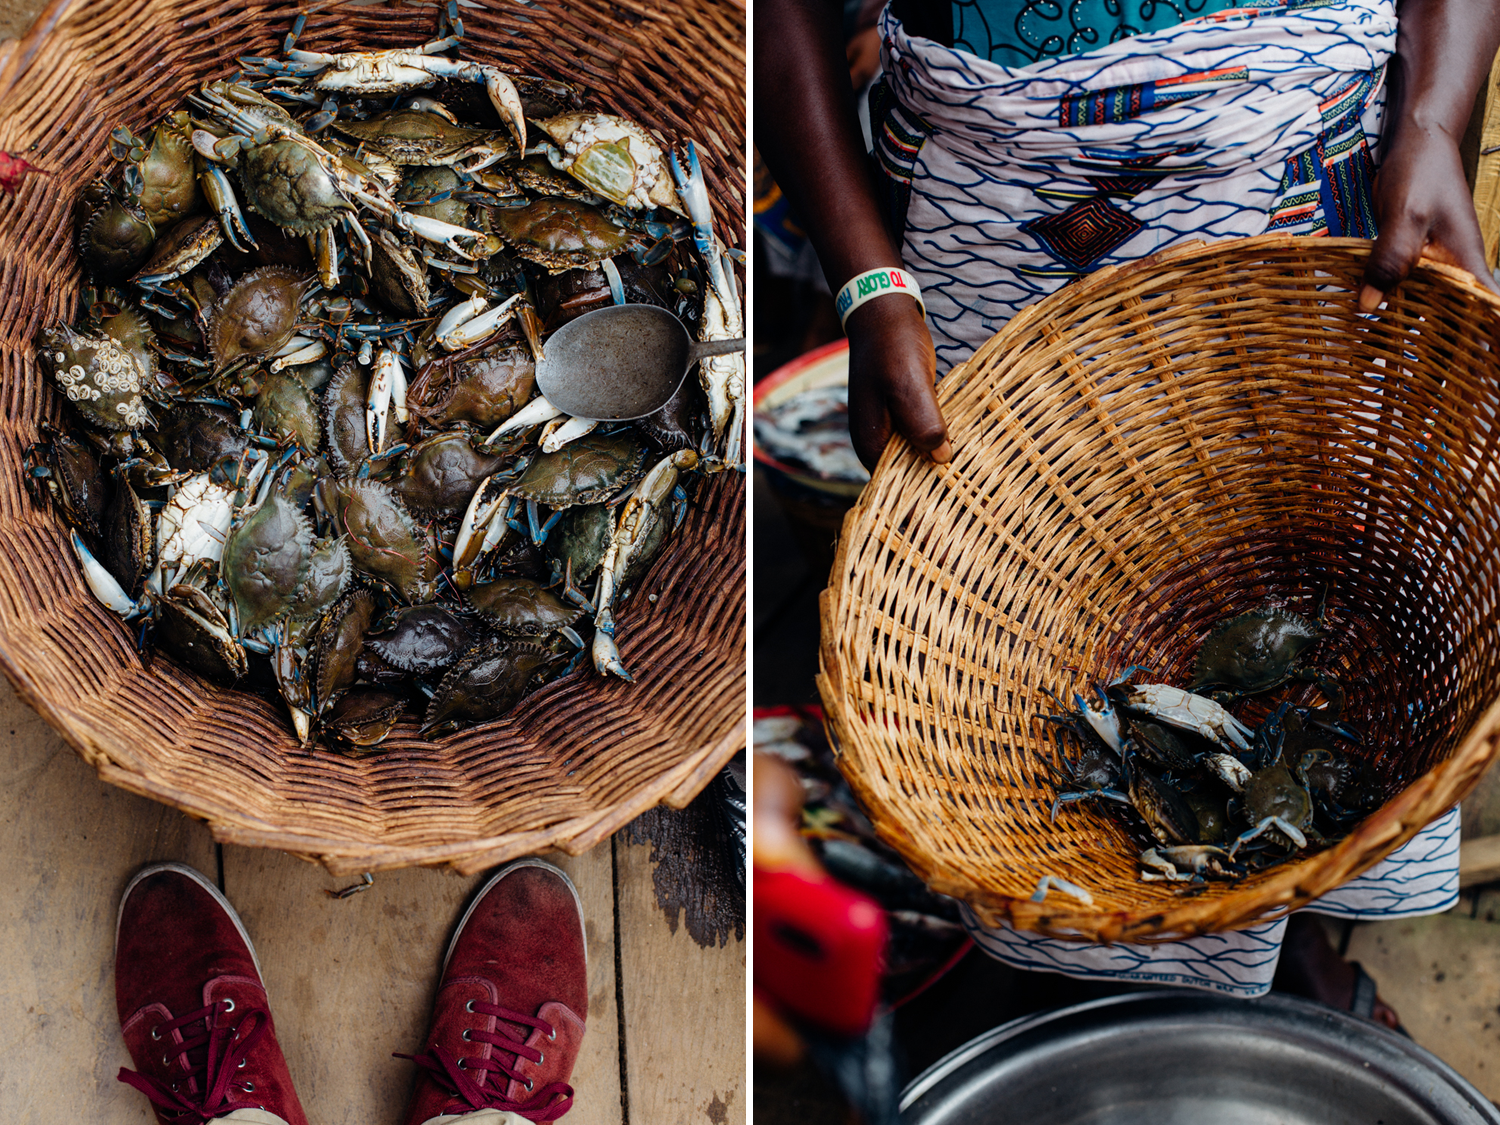 Crabs in a basket at the floating market in Koko